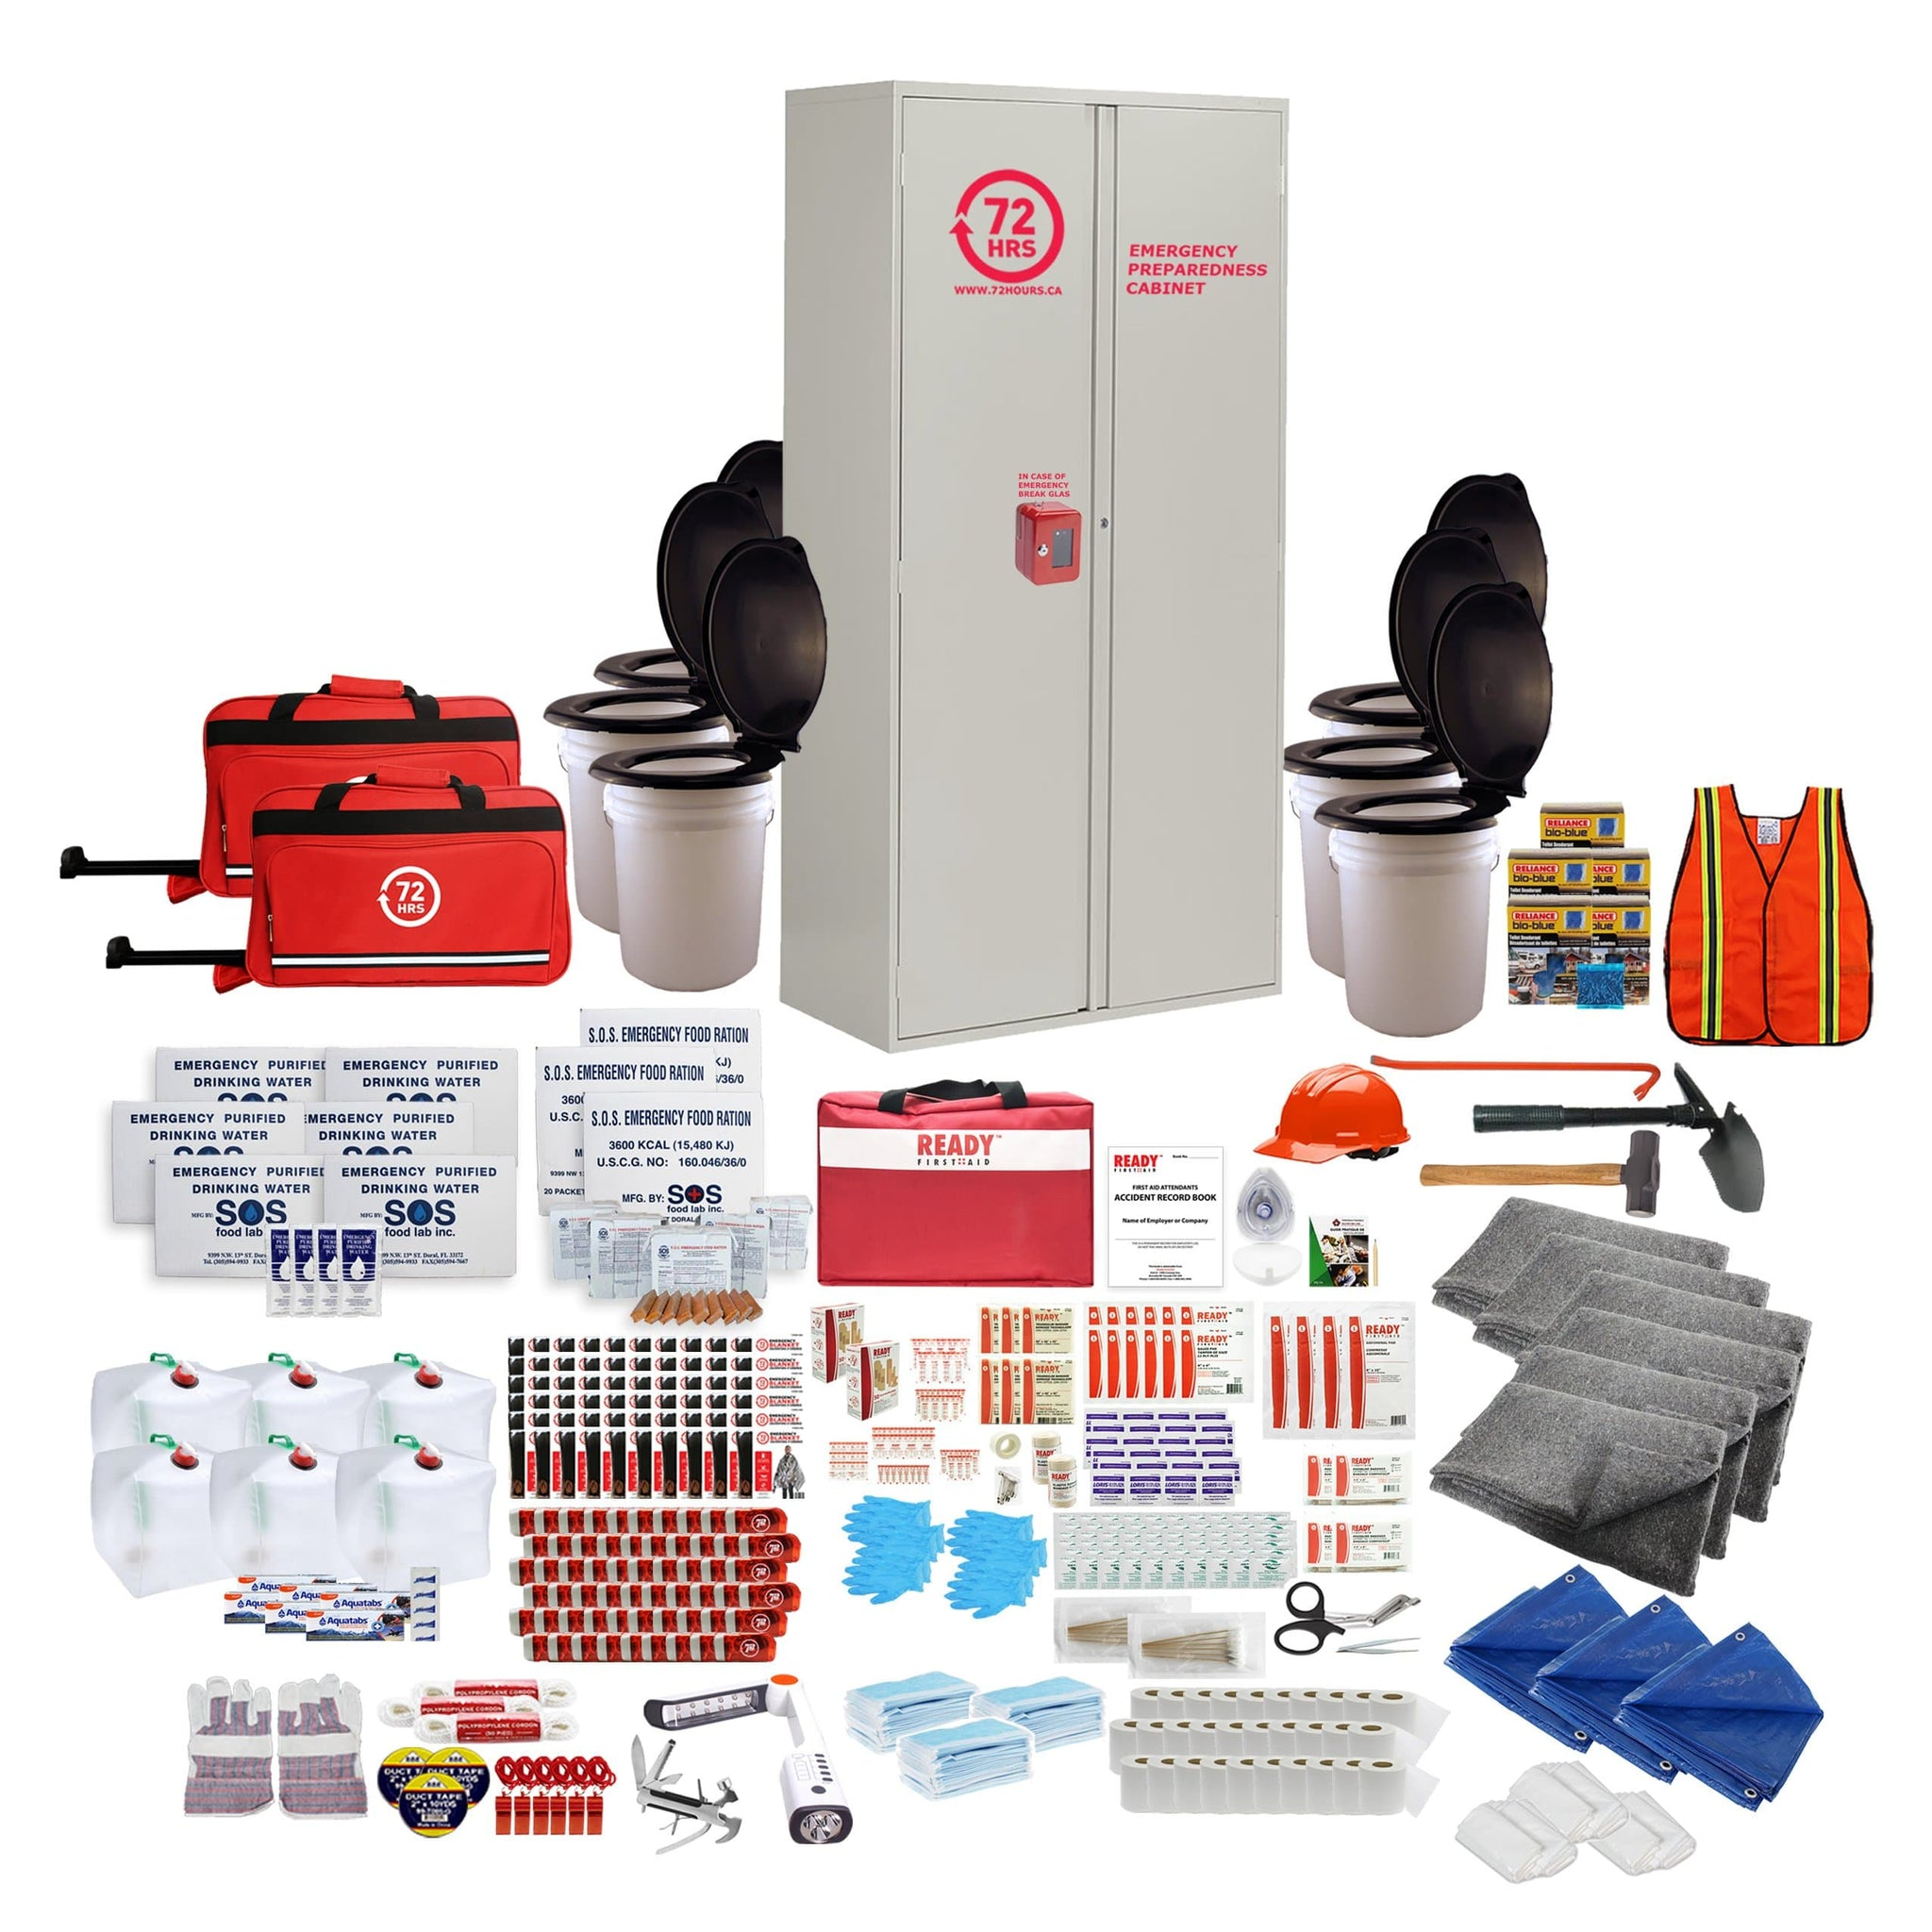 60 Person Emergency Cabinet Kit